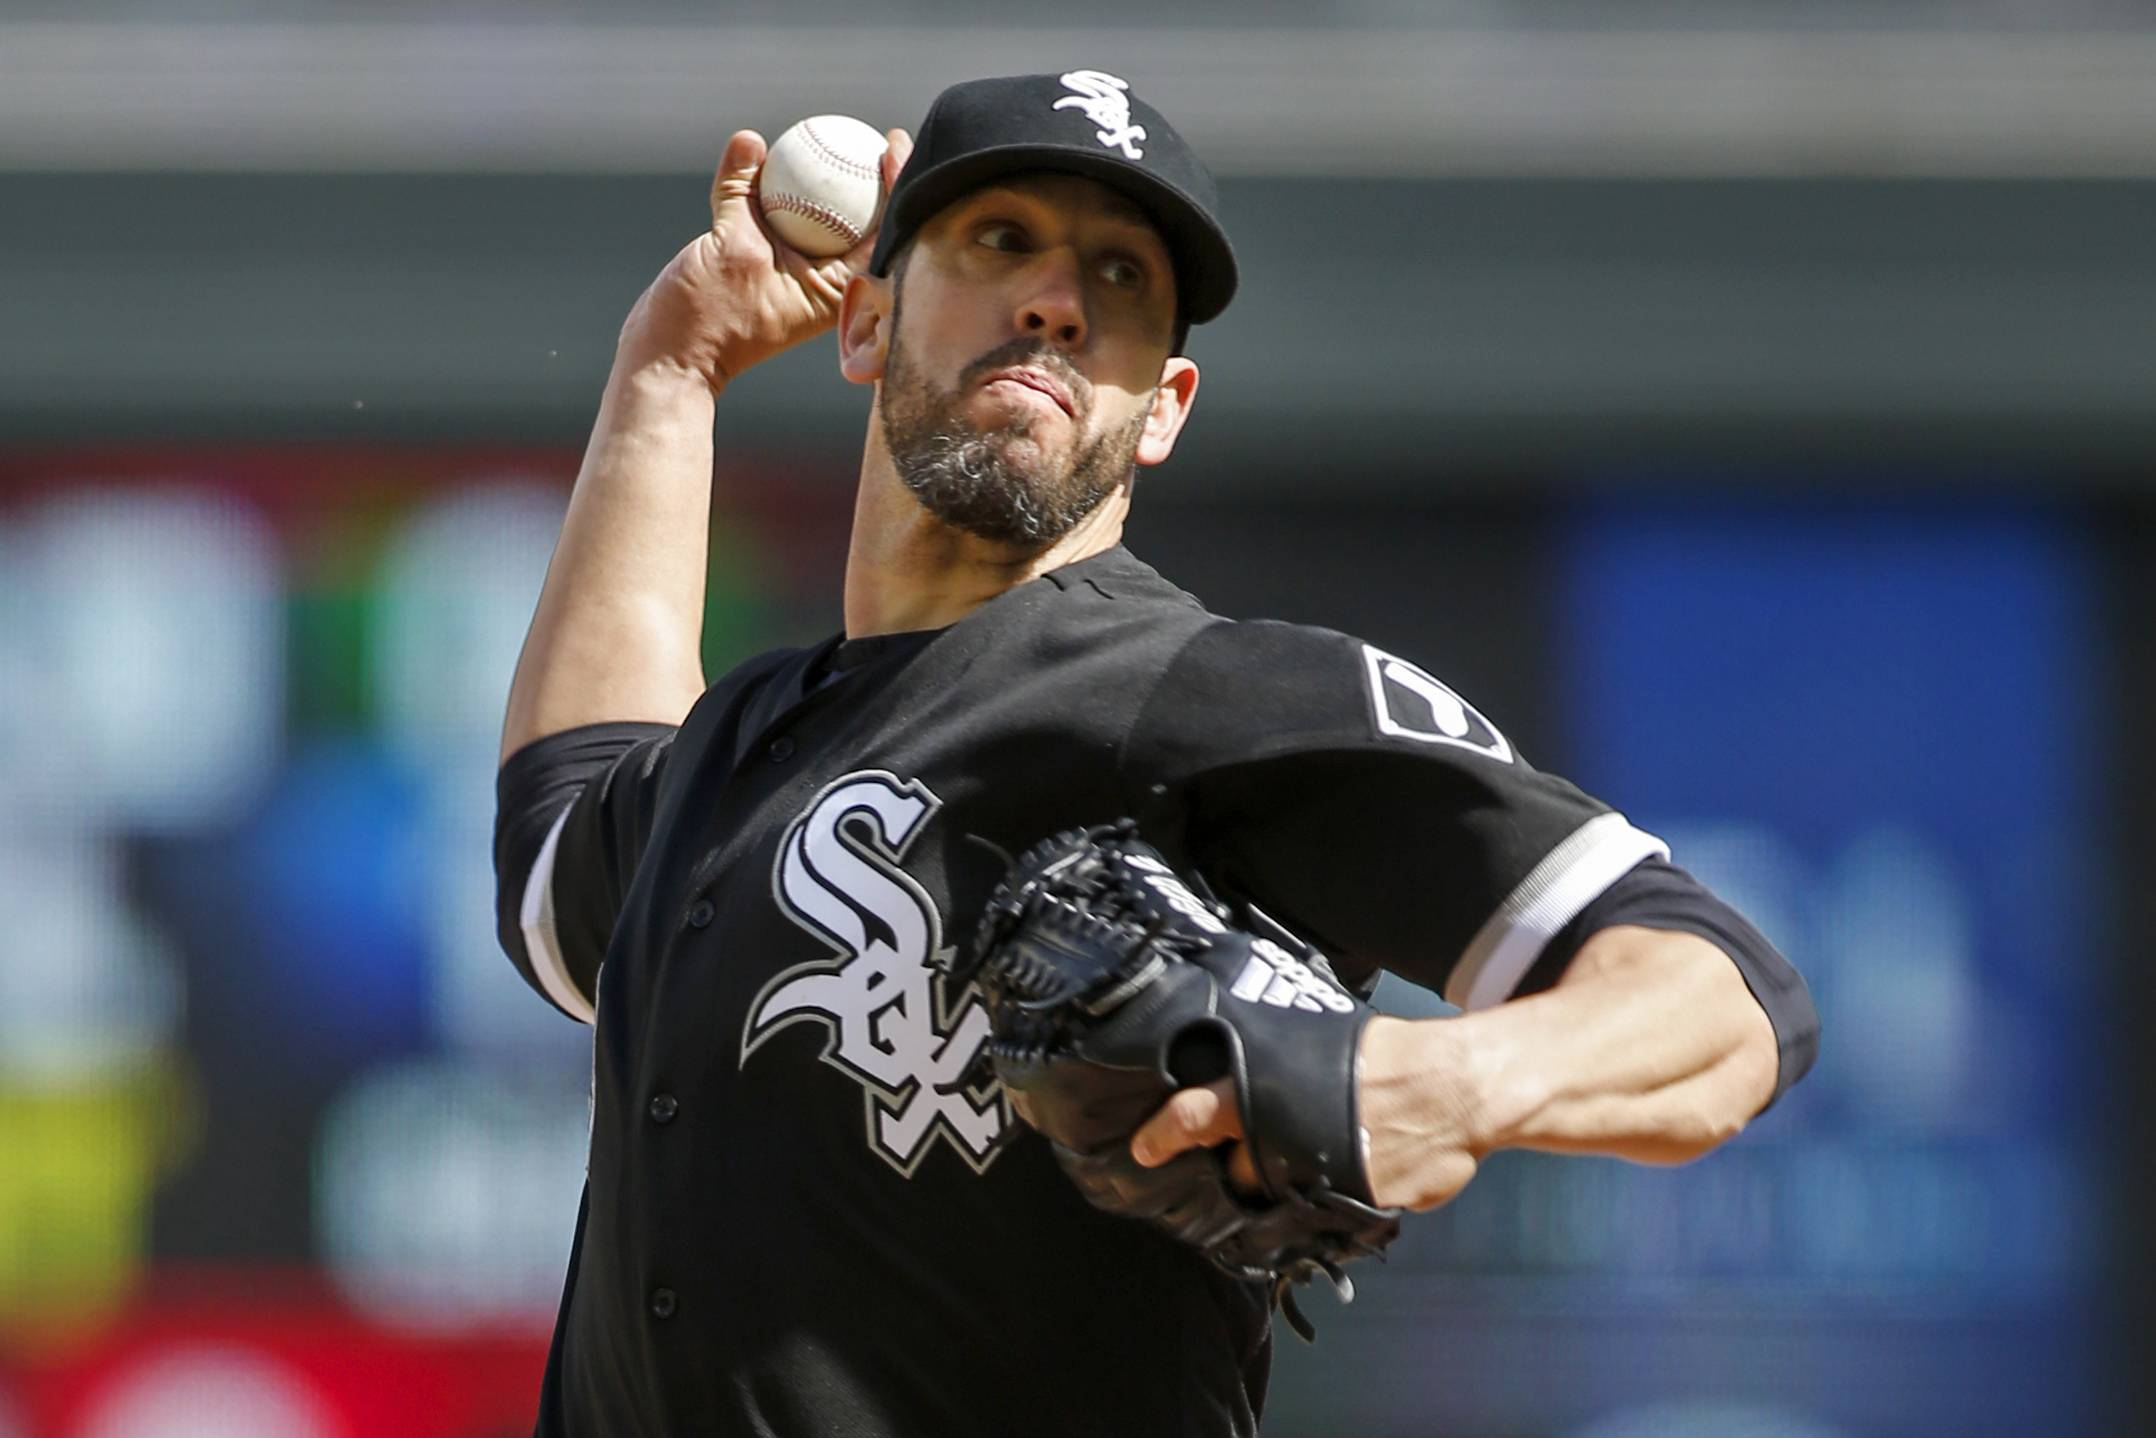 Chicago White Sox starting pitcher James Shields throws to the Minnesota Twins in the first inning of a baseball game Sunday, April 16, 2017, in Minneapolis.